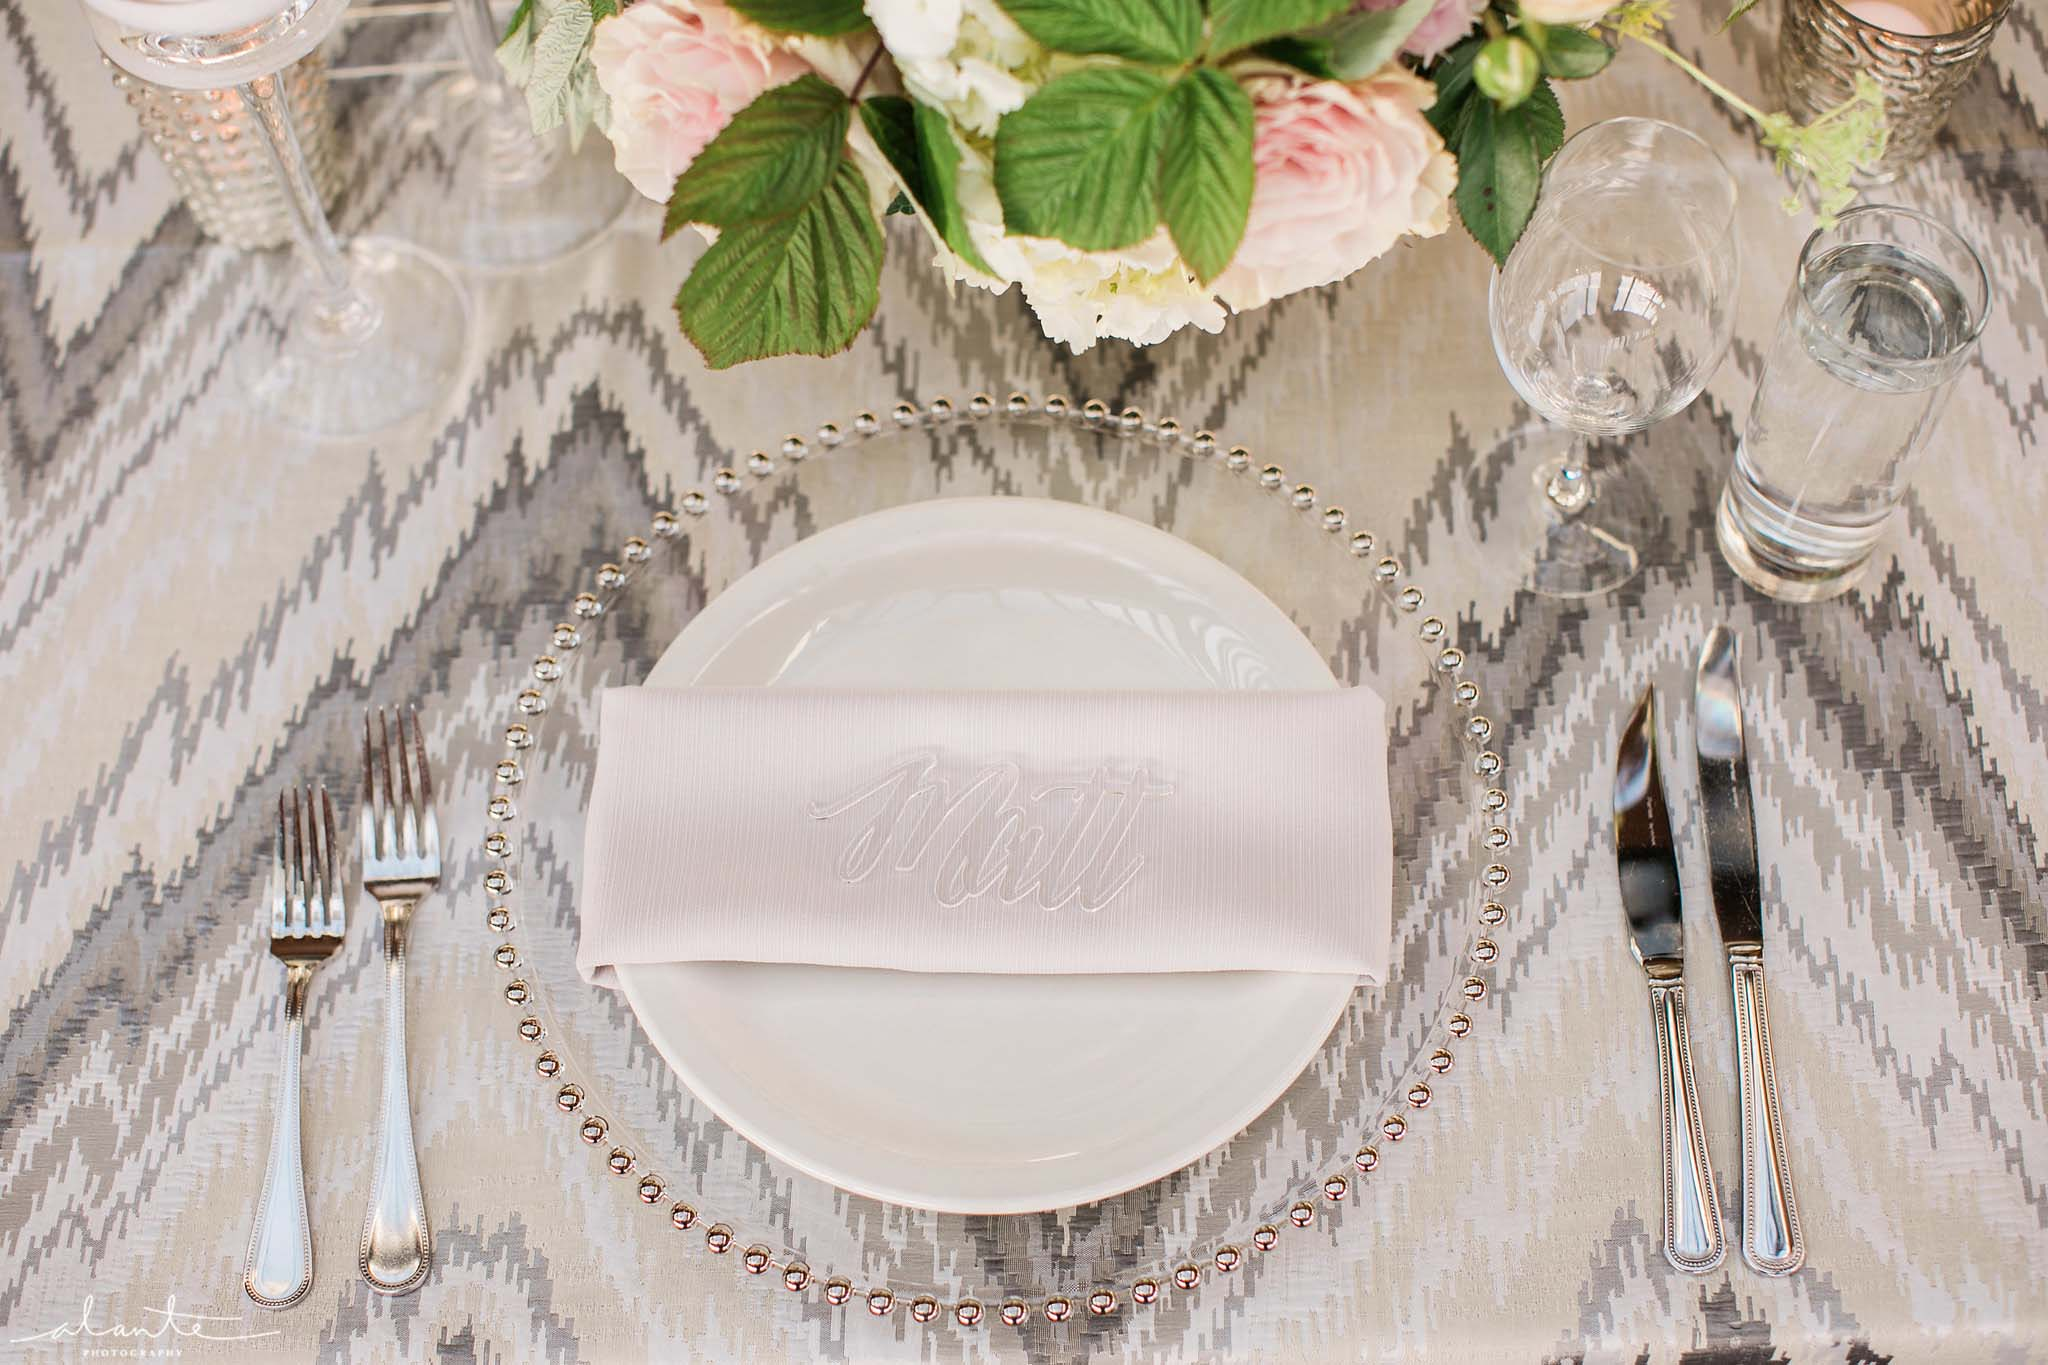 Place setting with beaded charger plate and lucite name card, Olympic Rooftop Pavilion wedding with pink peonies by Flora Nova Design Seattle